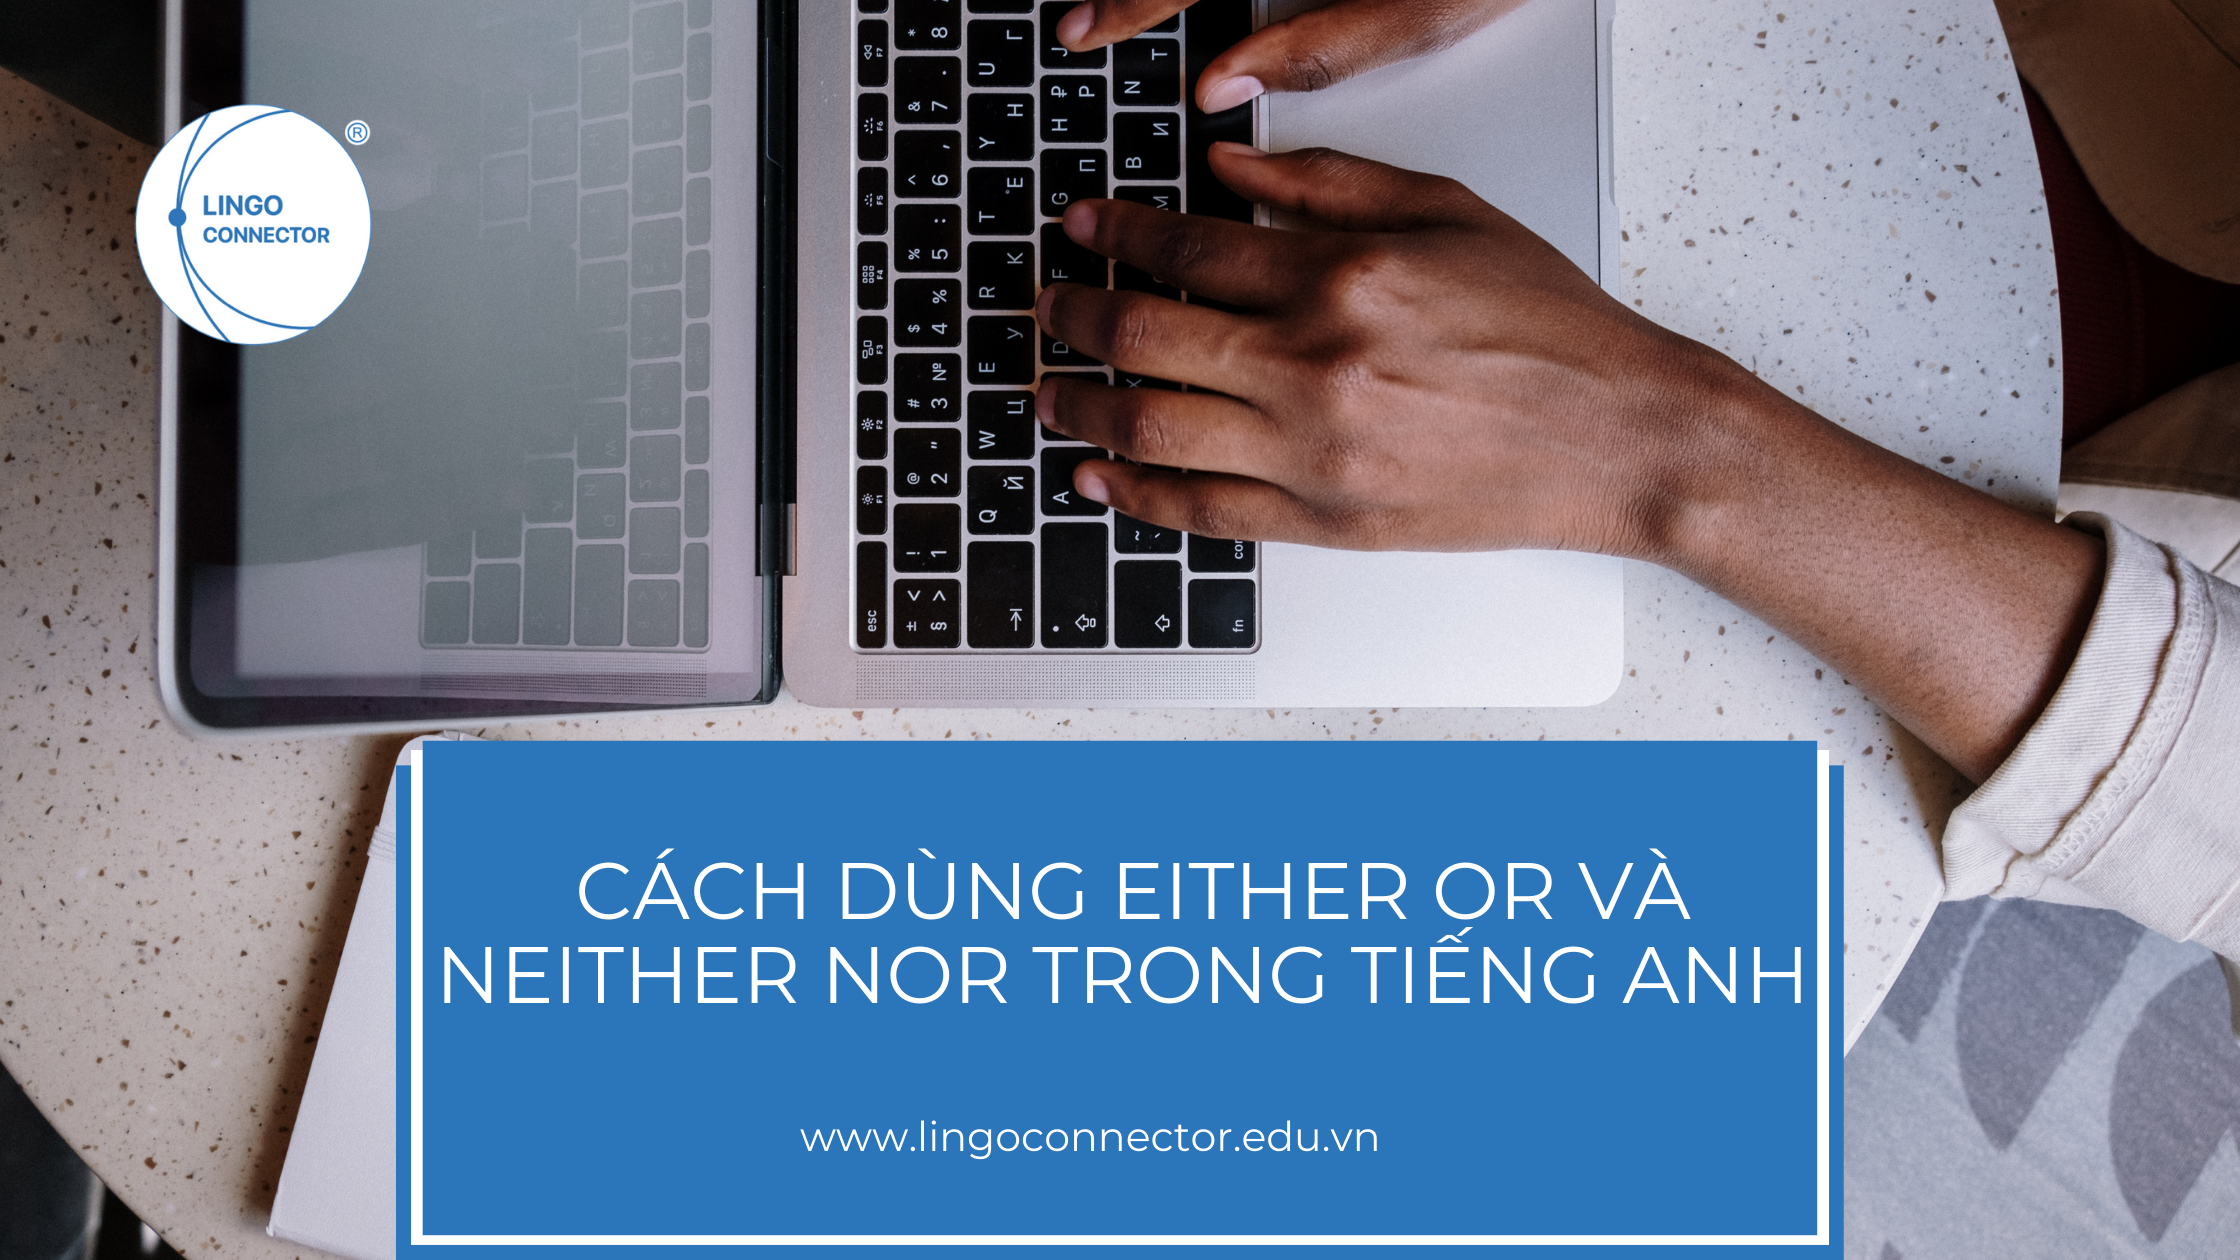 Cách dùng Either or và Neither nor trong tiếng Anh